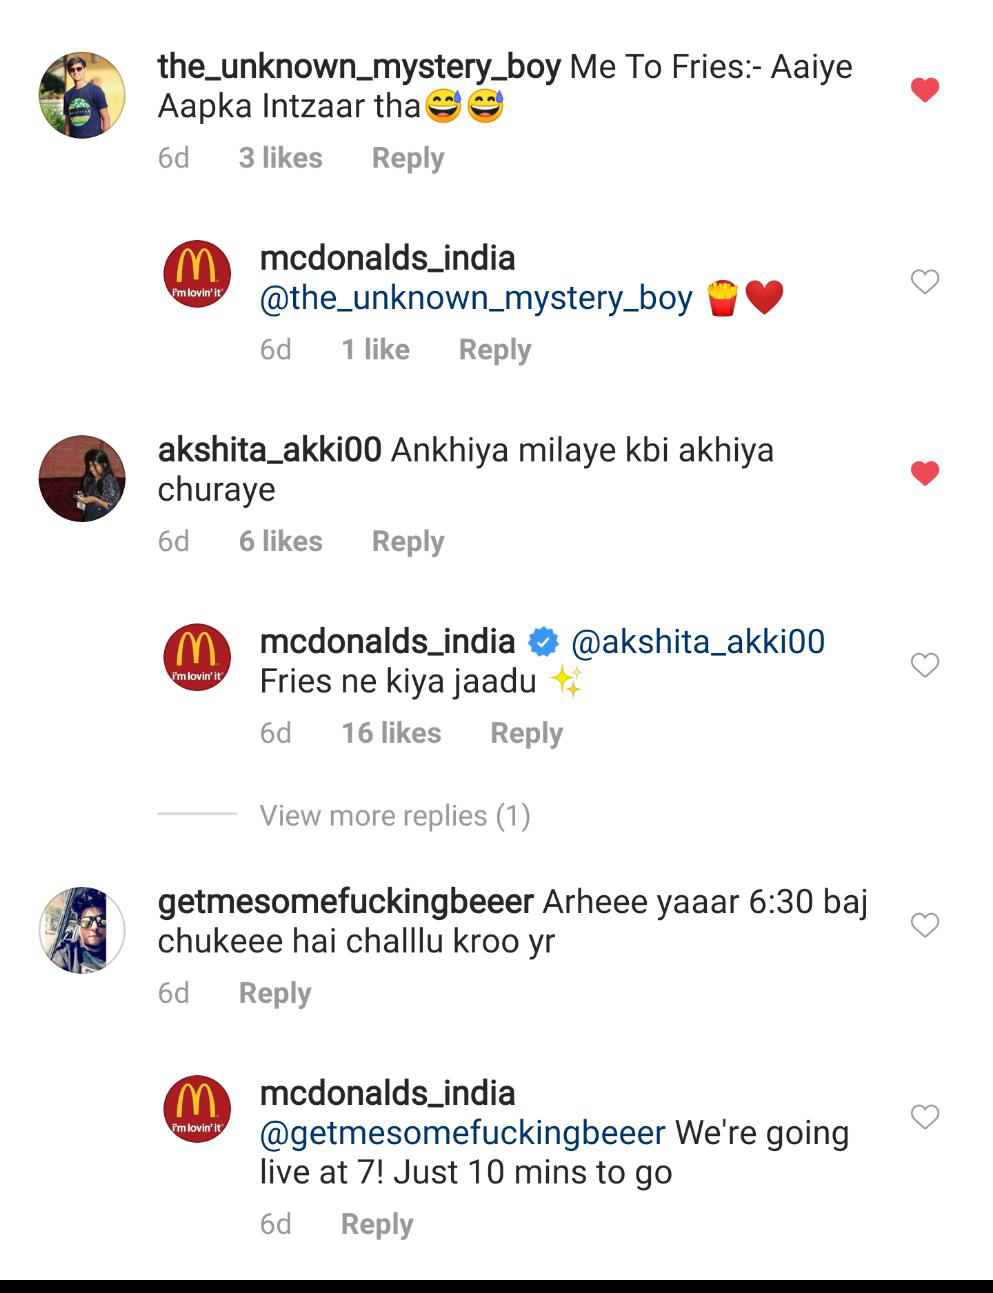 22feet Tribal Worldwide India taps Instagram music for new McDonald's digital campaign